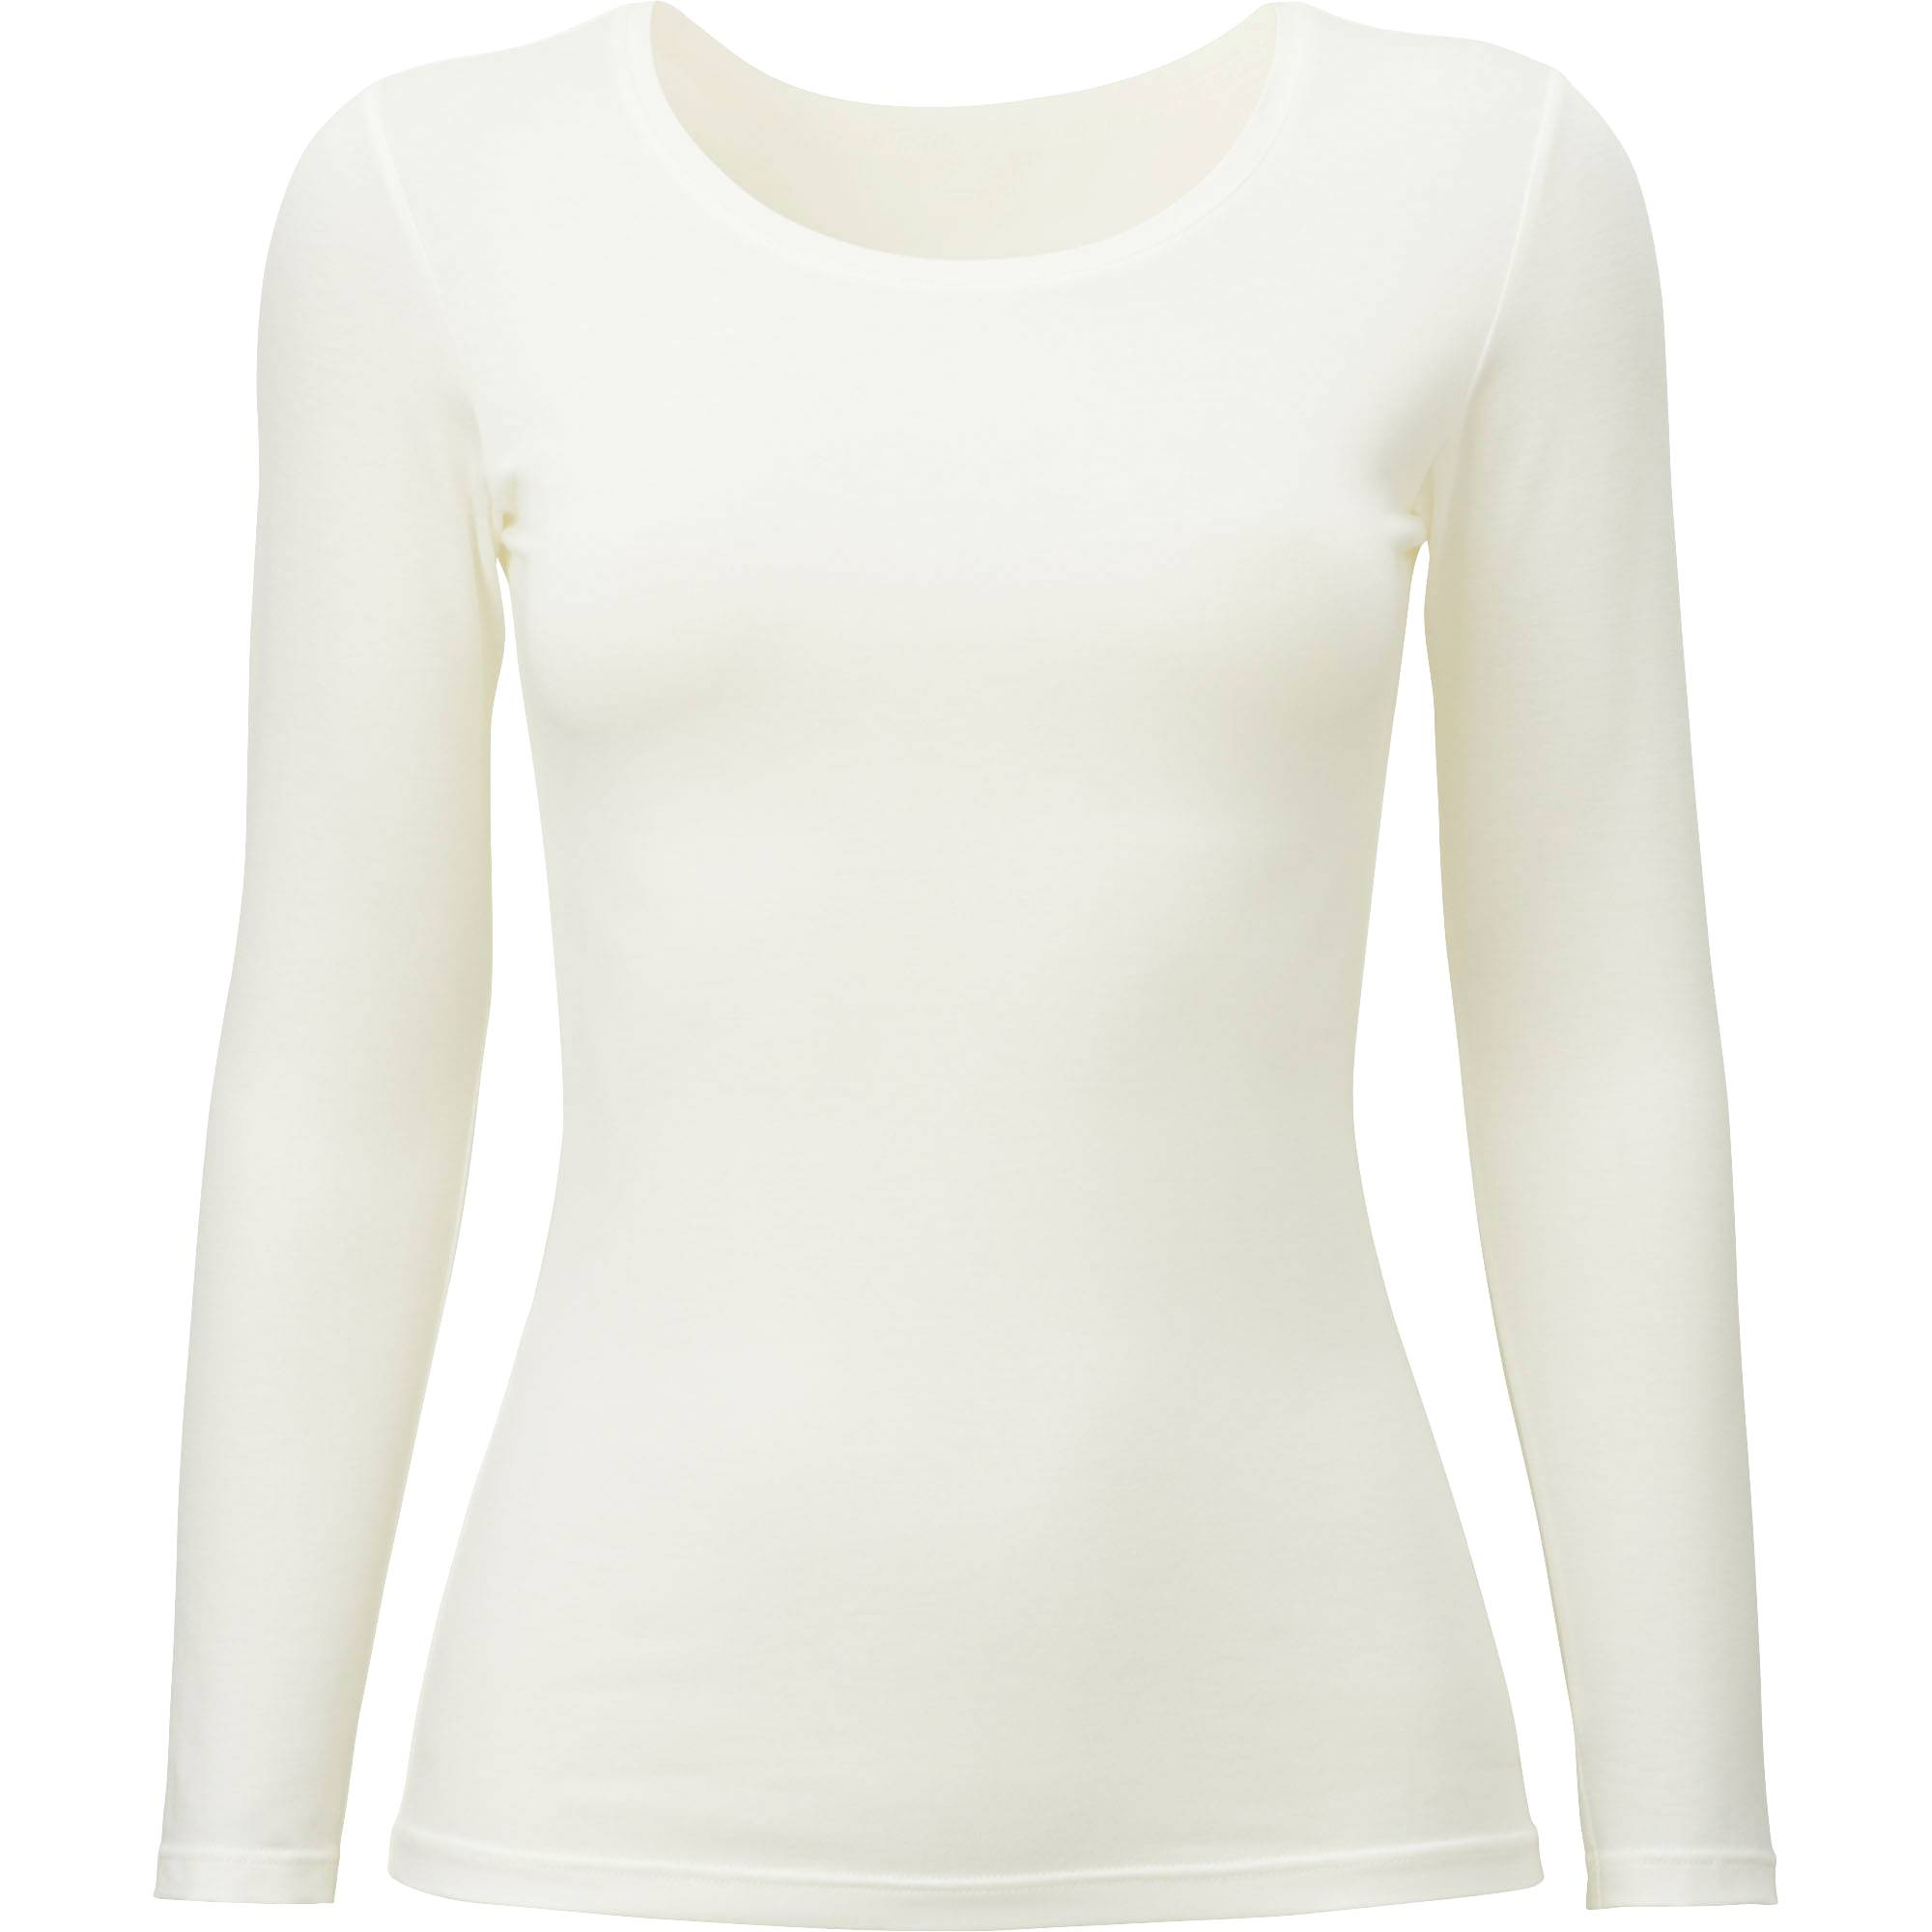 WOMEN HEATTECH CREWNECK LONG SLEEVE T-SHIRT | UNIQLO US